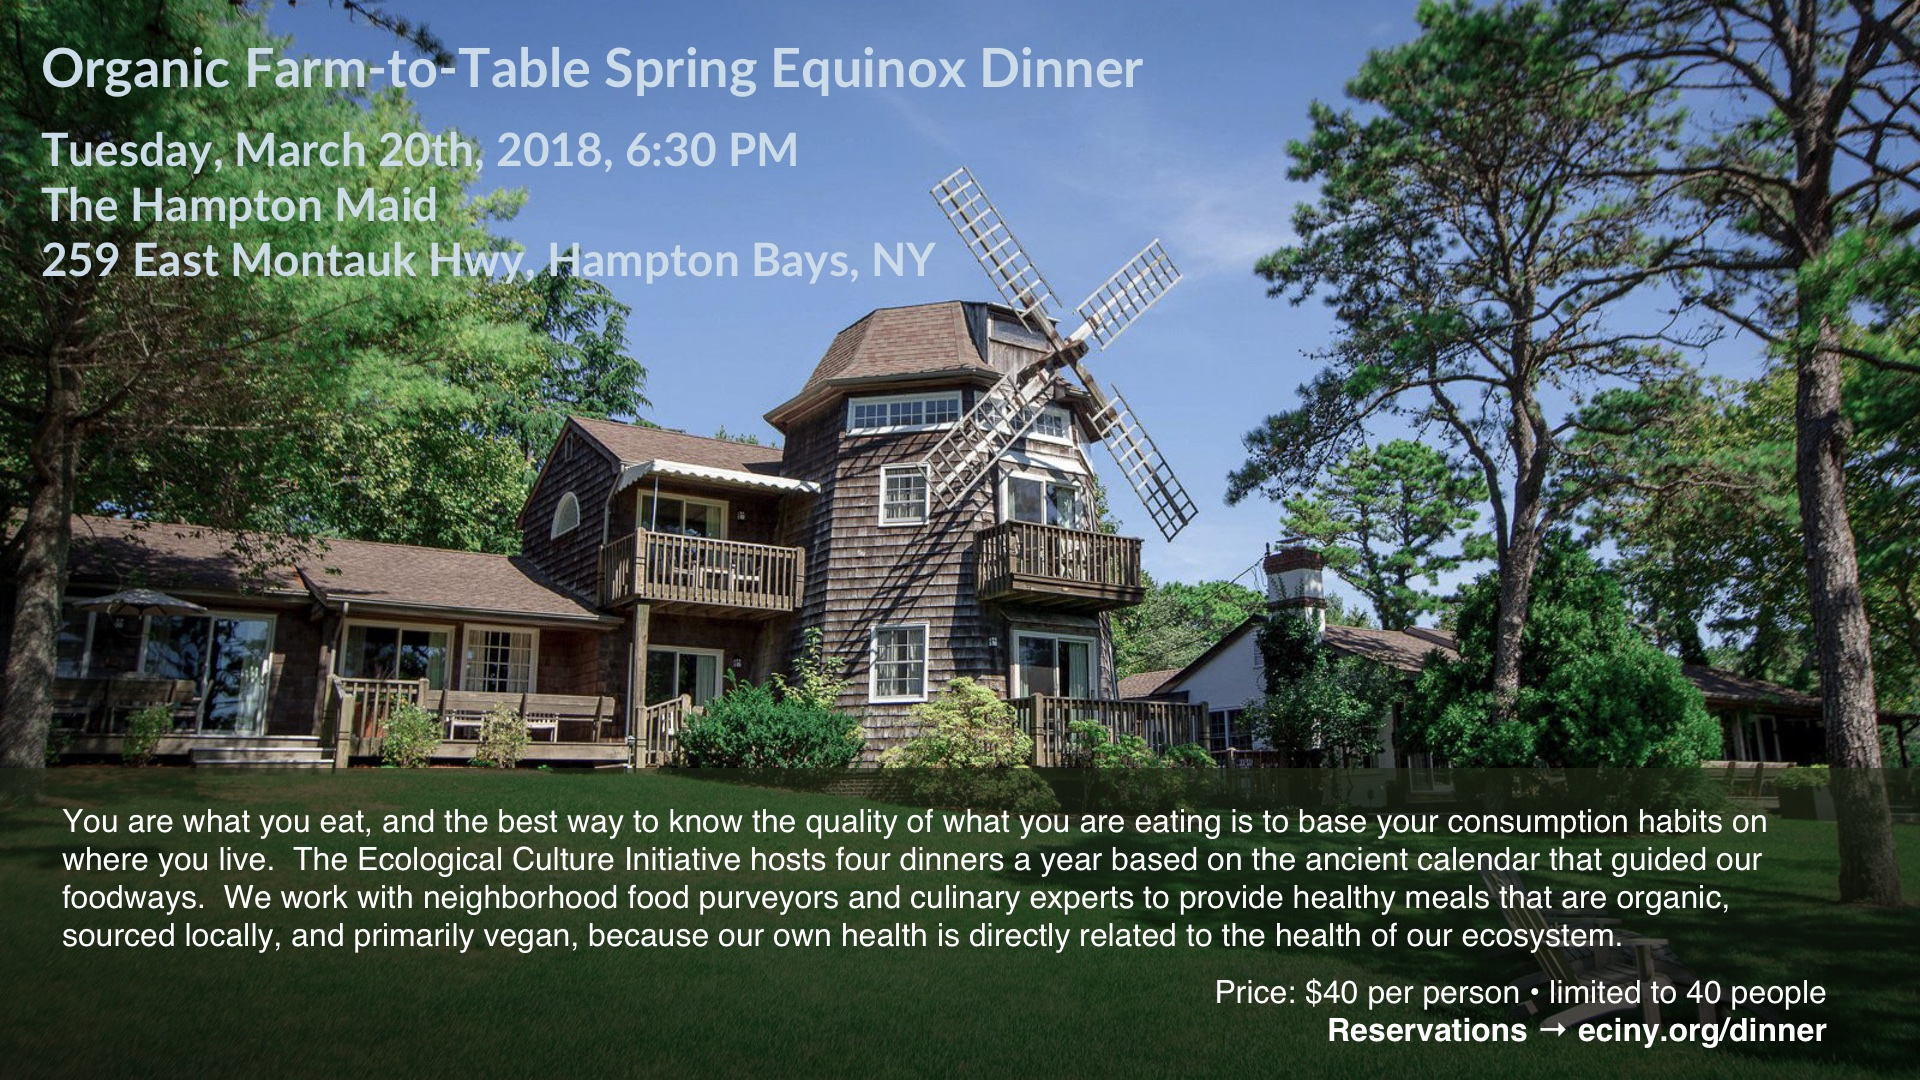 Organic Farm-to-Table Spring Equinox Dinner - March 20th, 2018 - FB cover 1920x1080.jpg